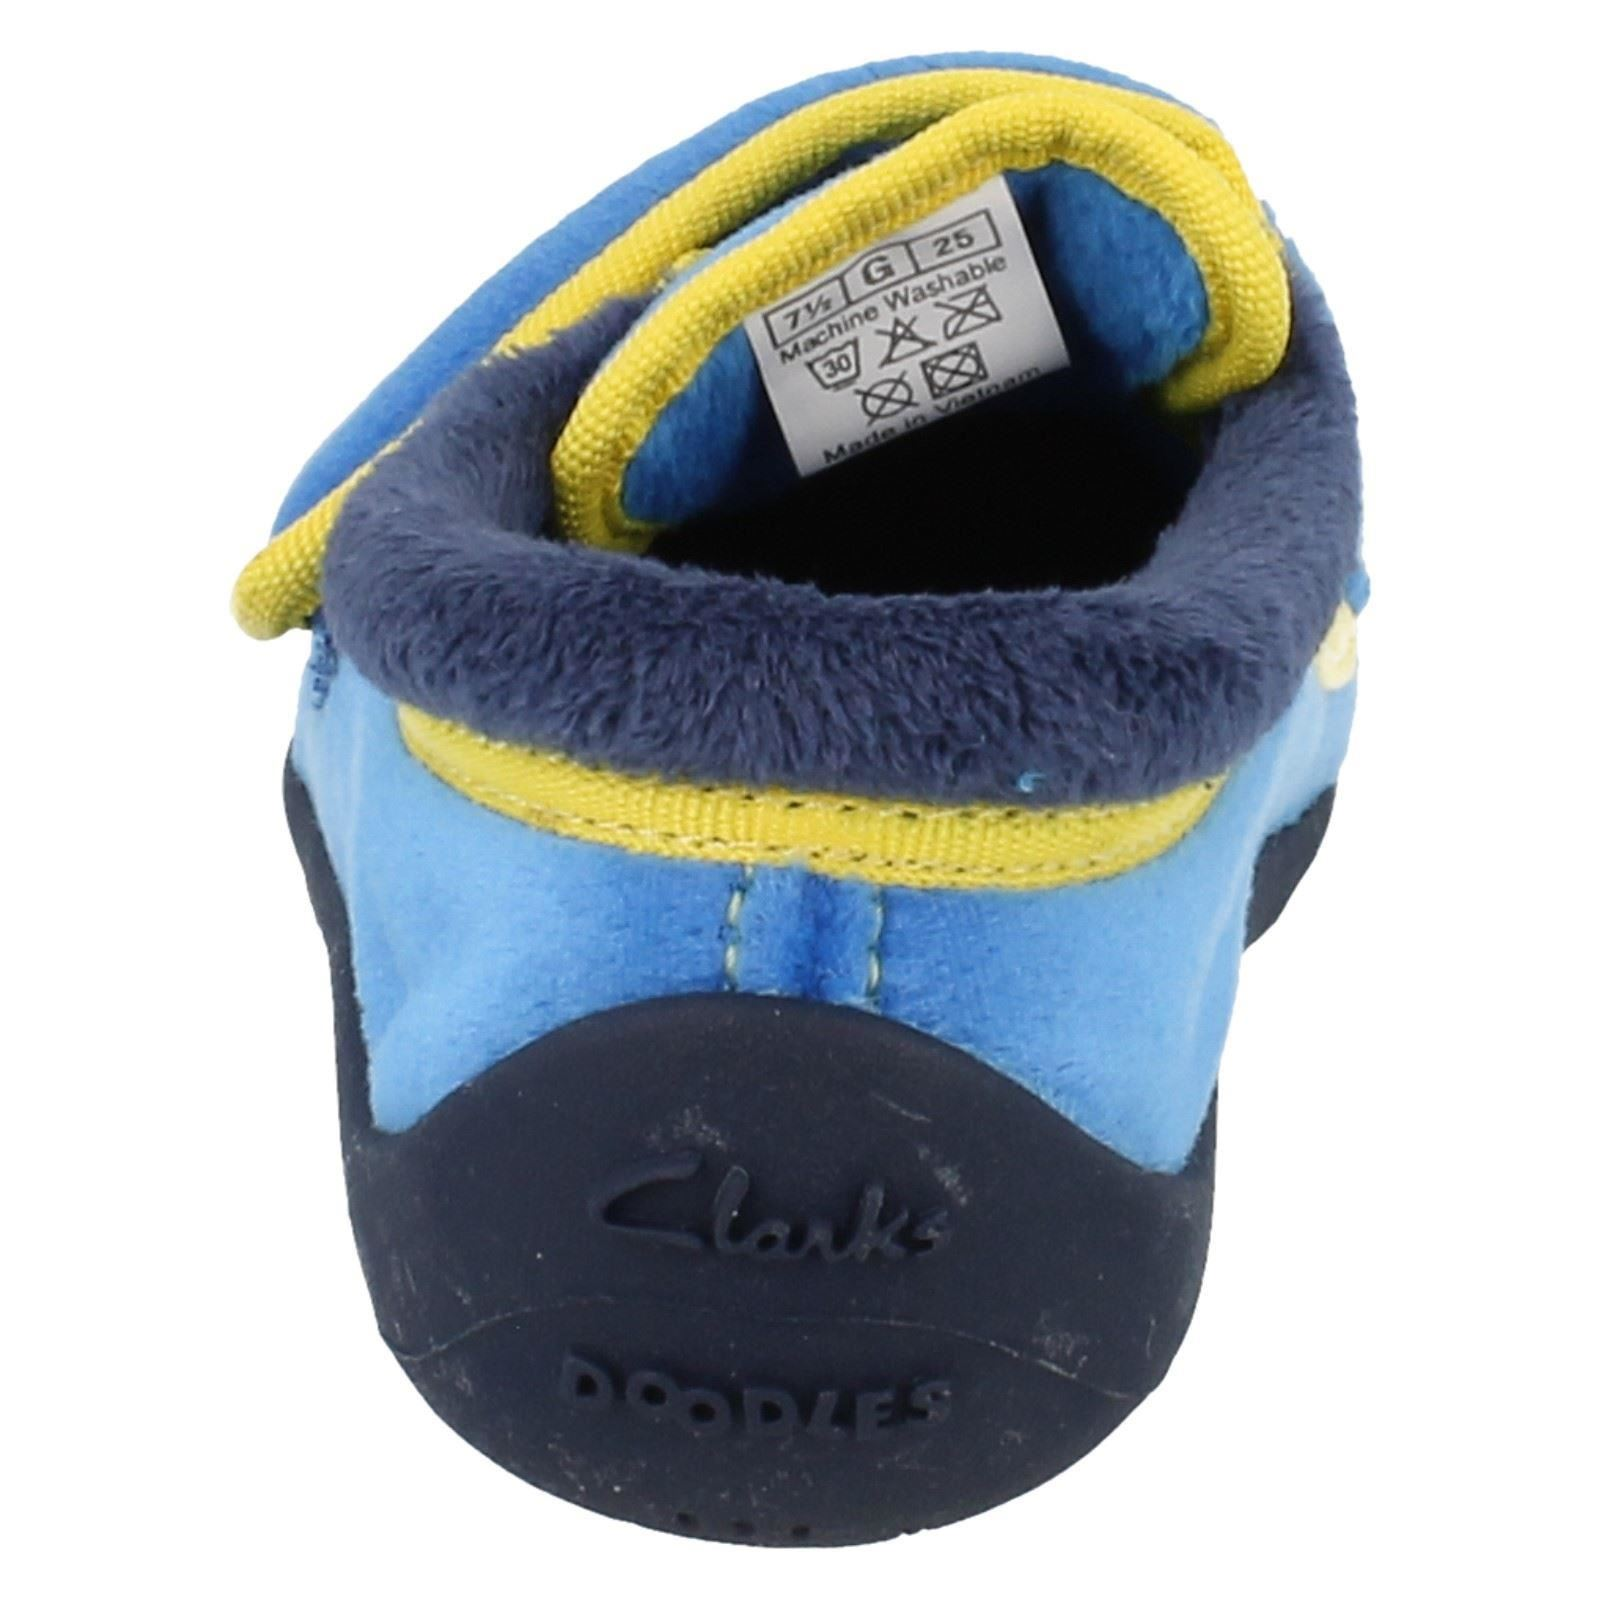 Clarks Boys Slippers - Saurus Dreams